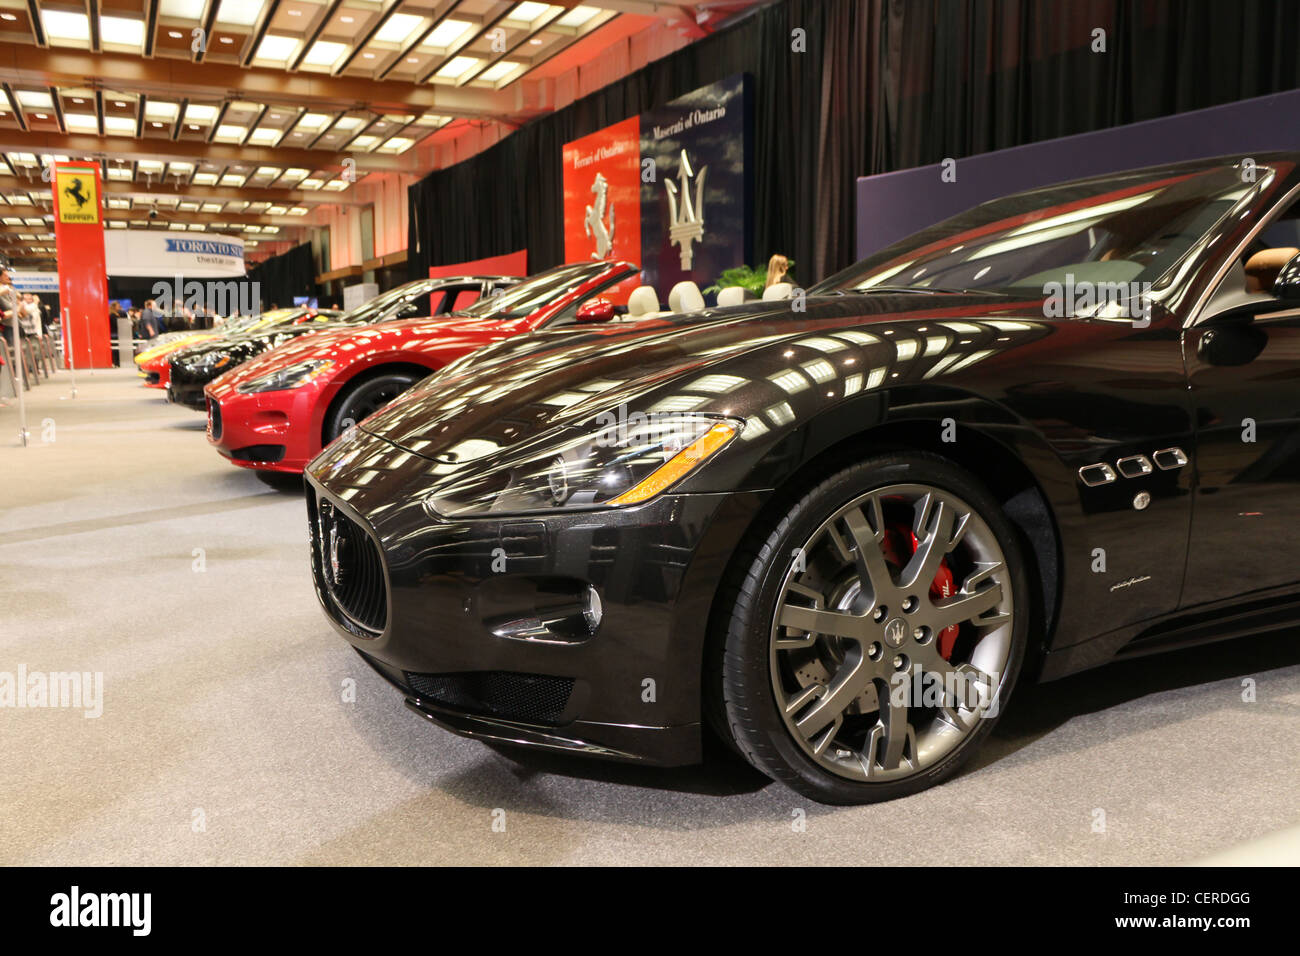 ferrari luxury sports cars in rows - Stock Image